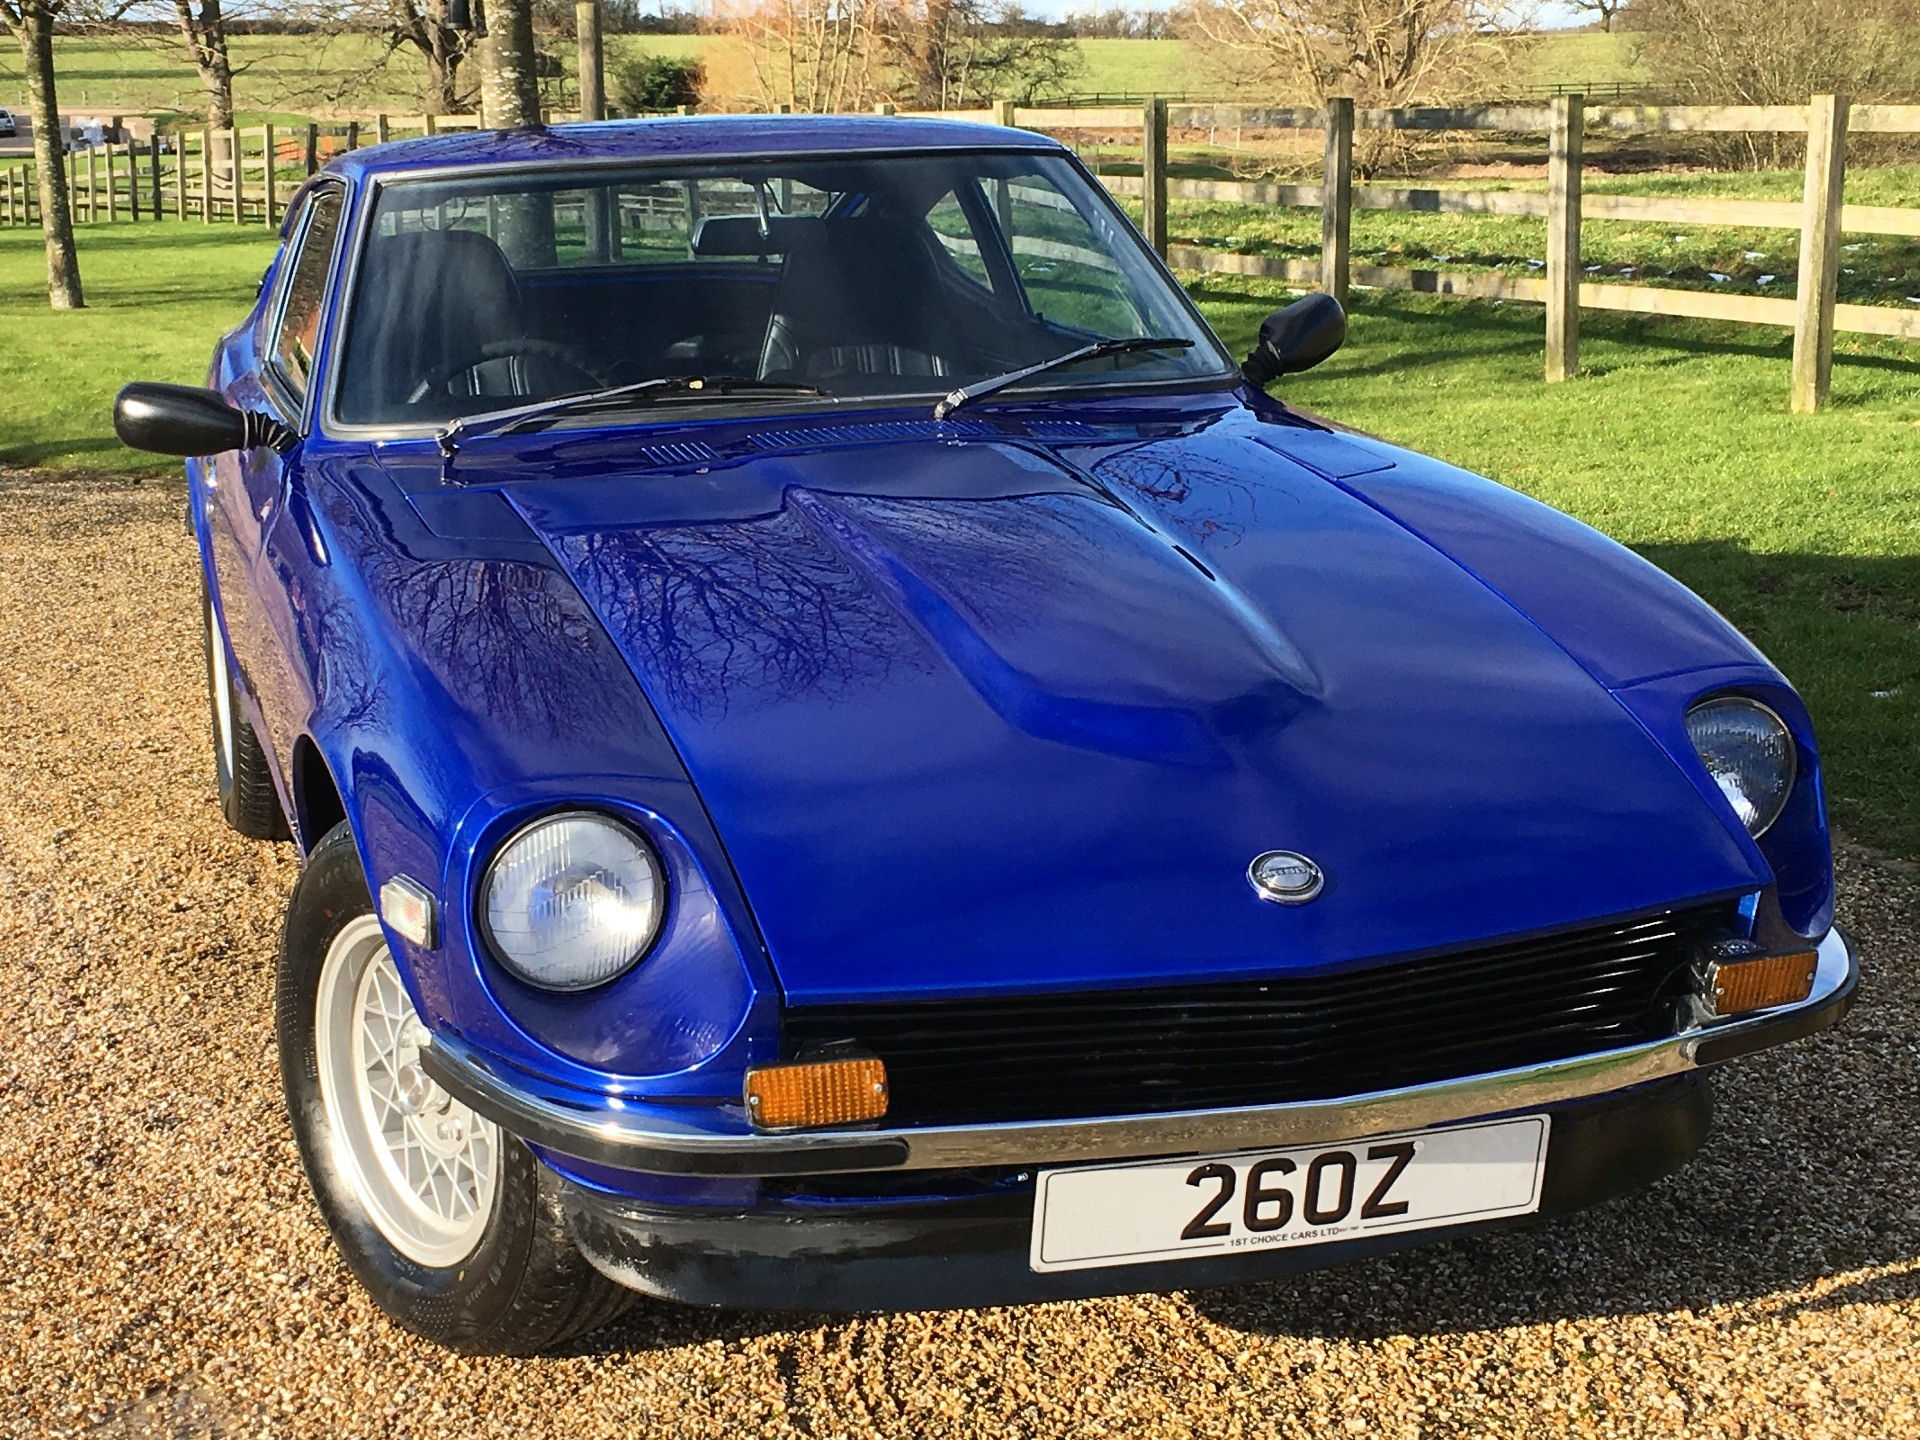 Used DATSUN 260Z, METALLIC BLUE , 0.0, Coupe | 1st Choice Cars Ltd